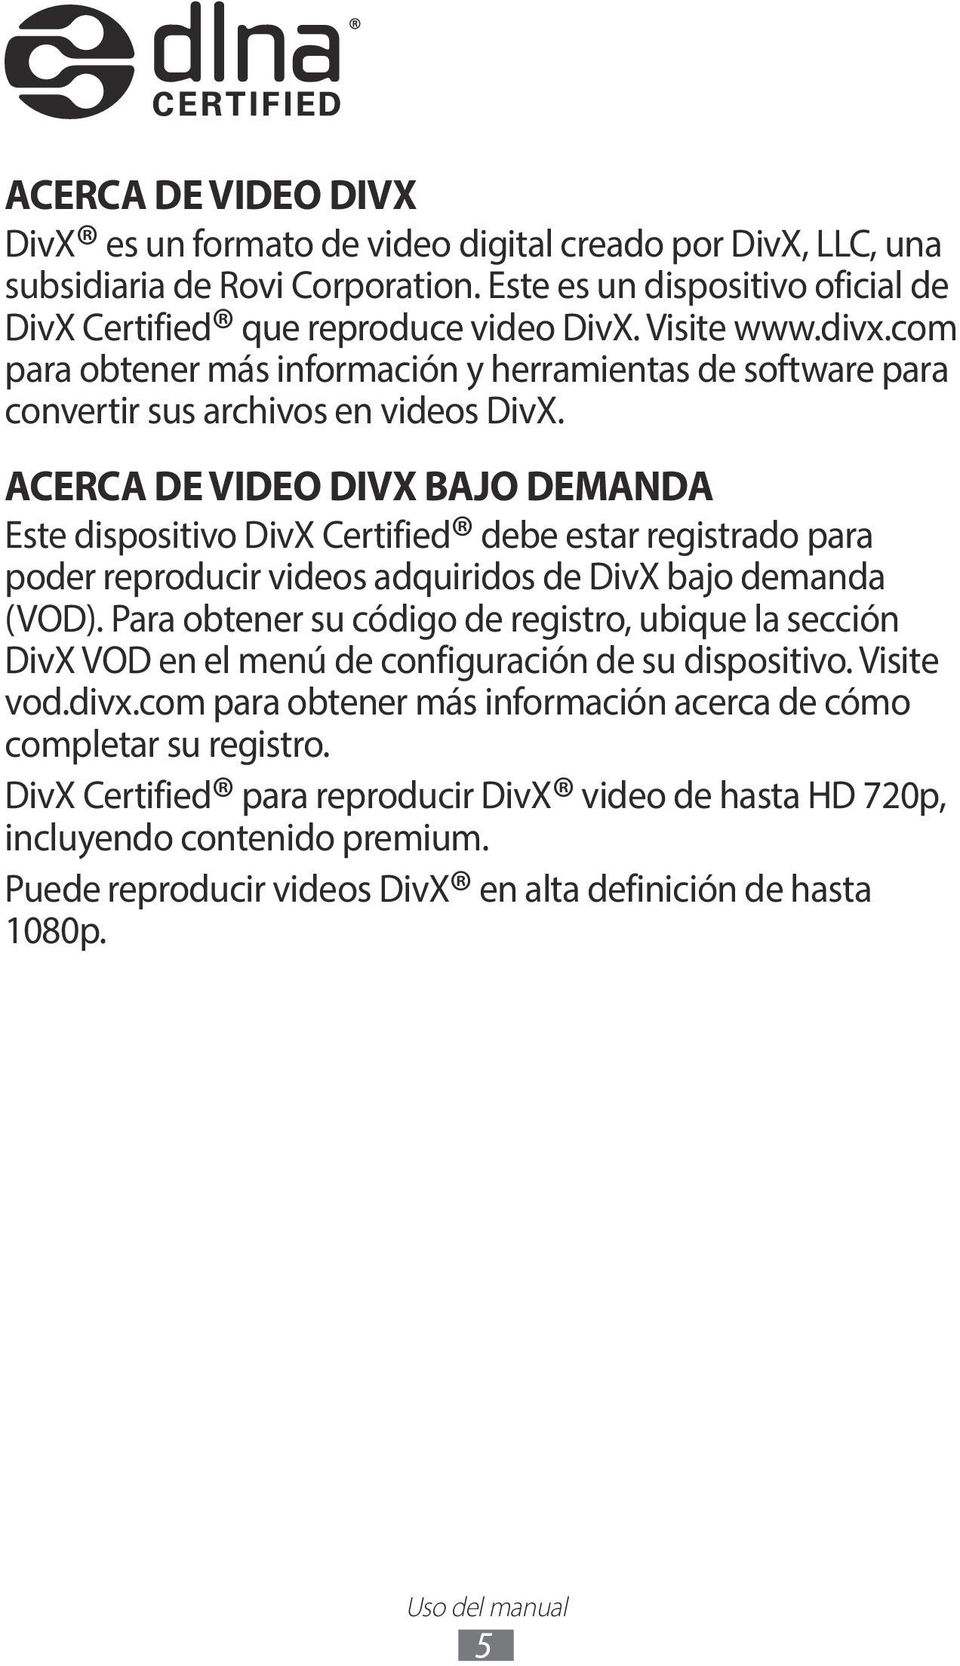 ACERCA DE VIDEO DIVX BAJO DEMANDA Este dispositivo DivX Certified debe estar registrado para poder reproducir videos adquiridos de DivX bajo demanda (VOD).